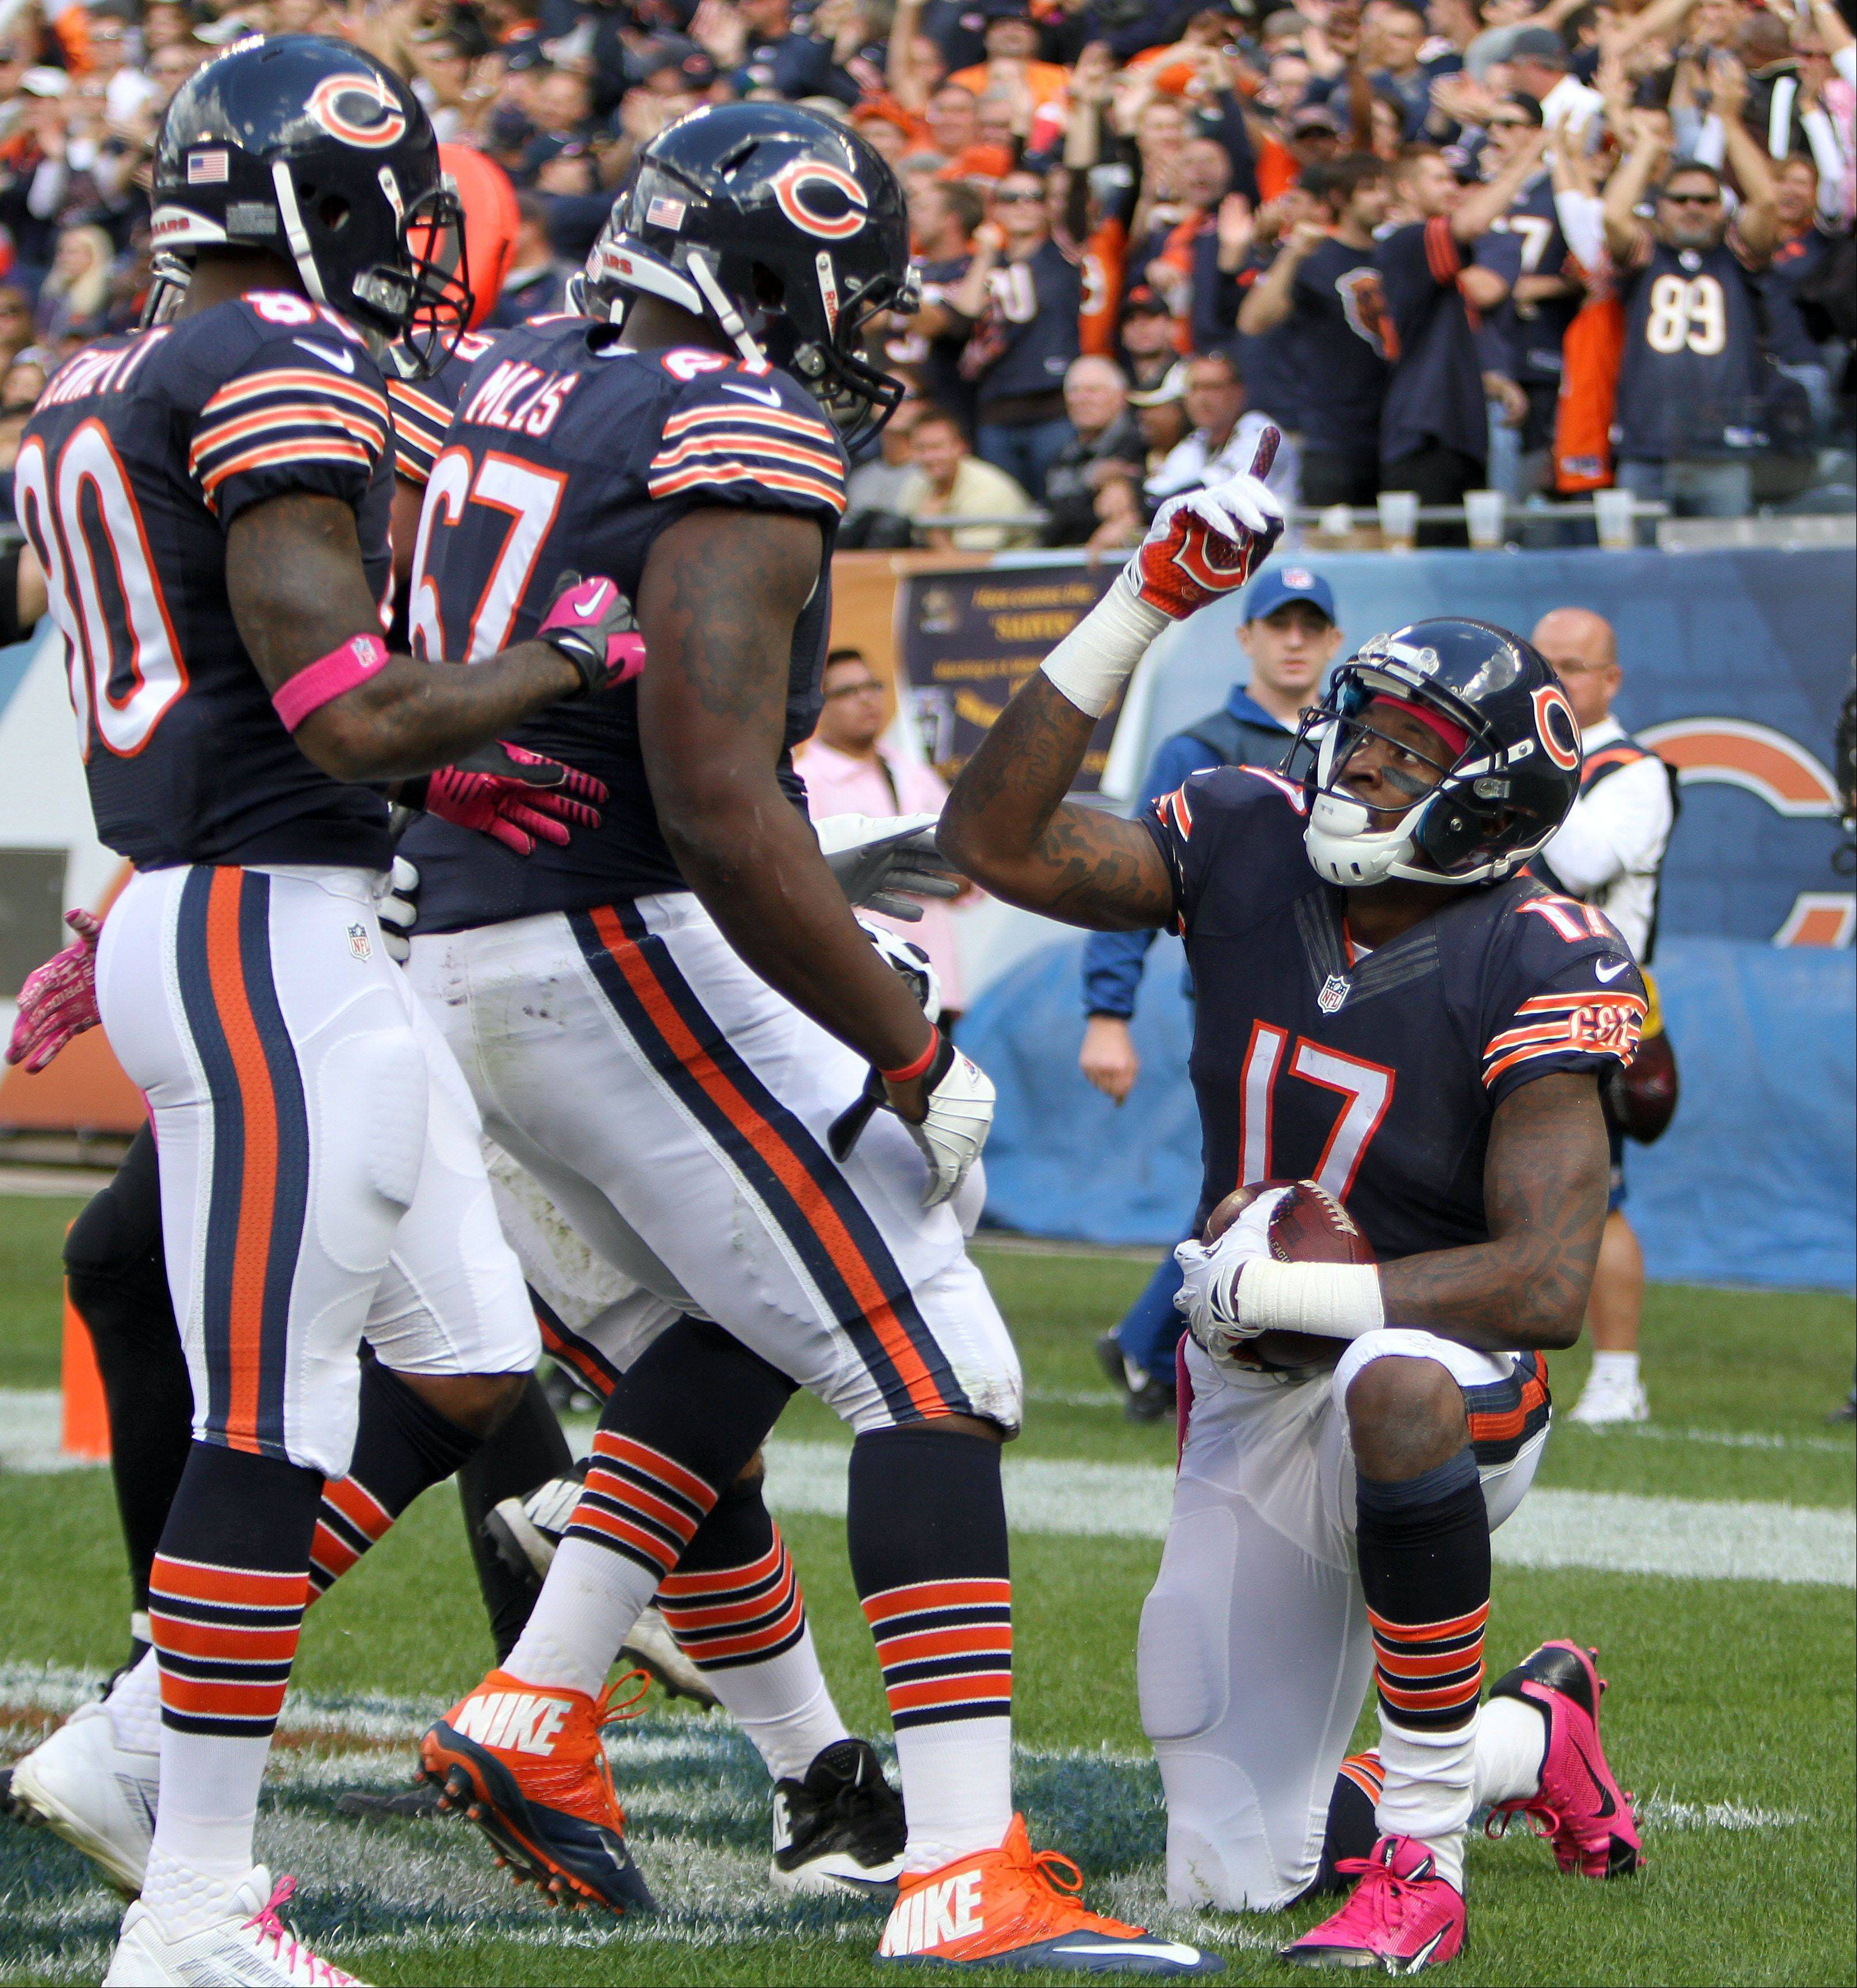 Alshon Jeffery points to the sky after his third-quarter touchdown last week. Jeffery finished with 10 catches for a team-record 218 yards.